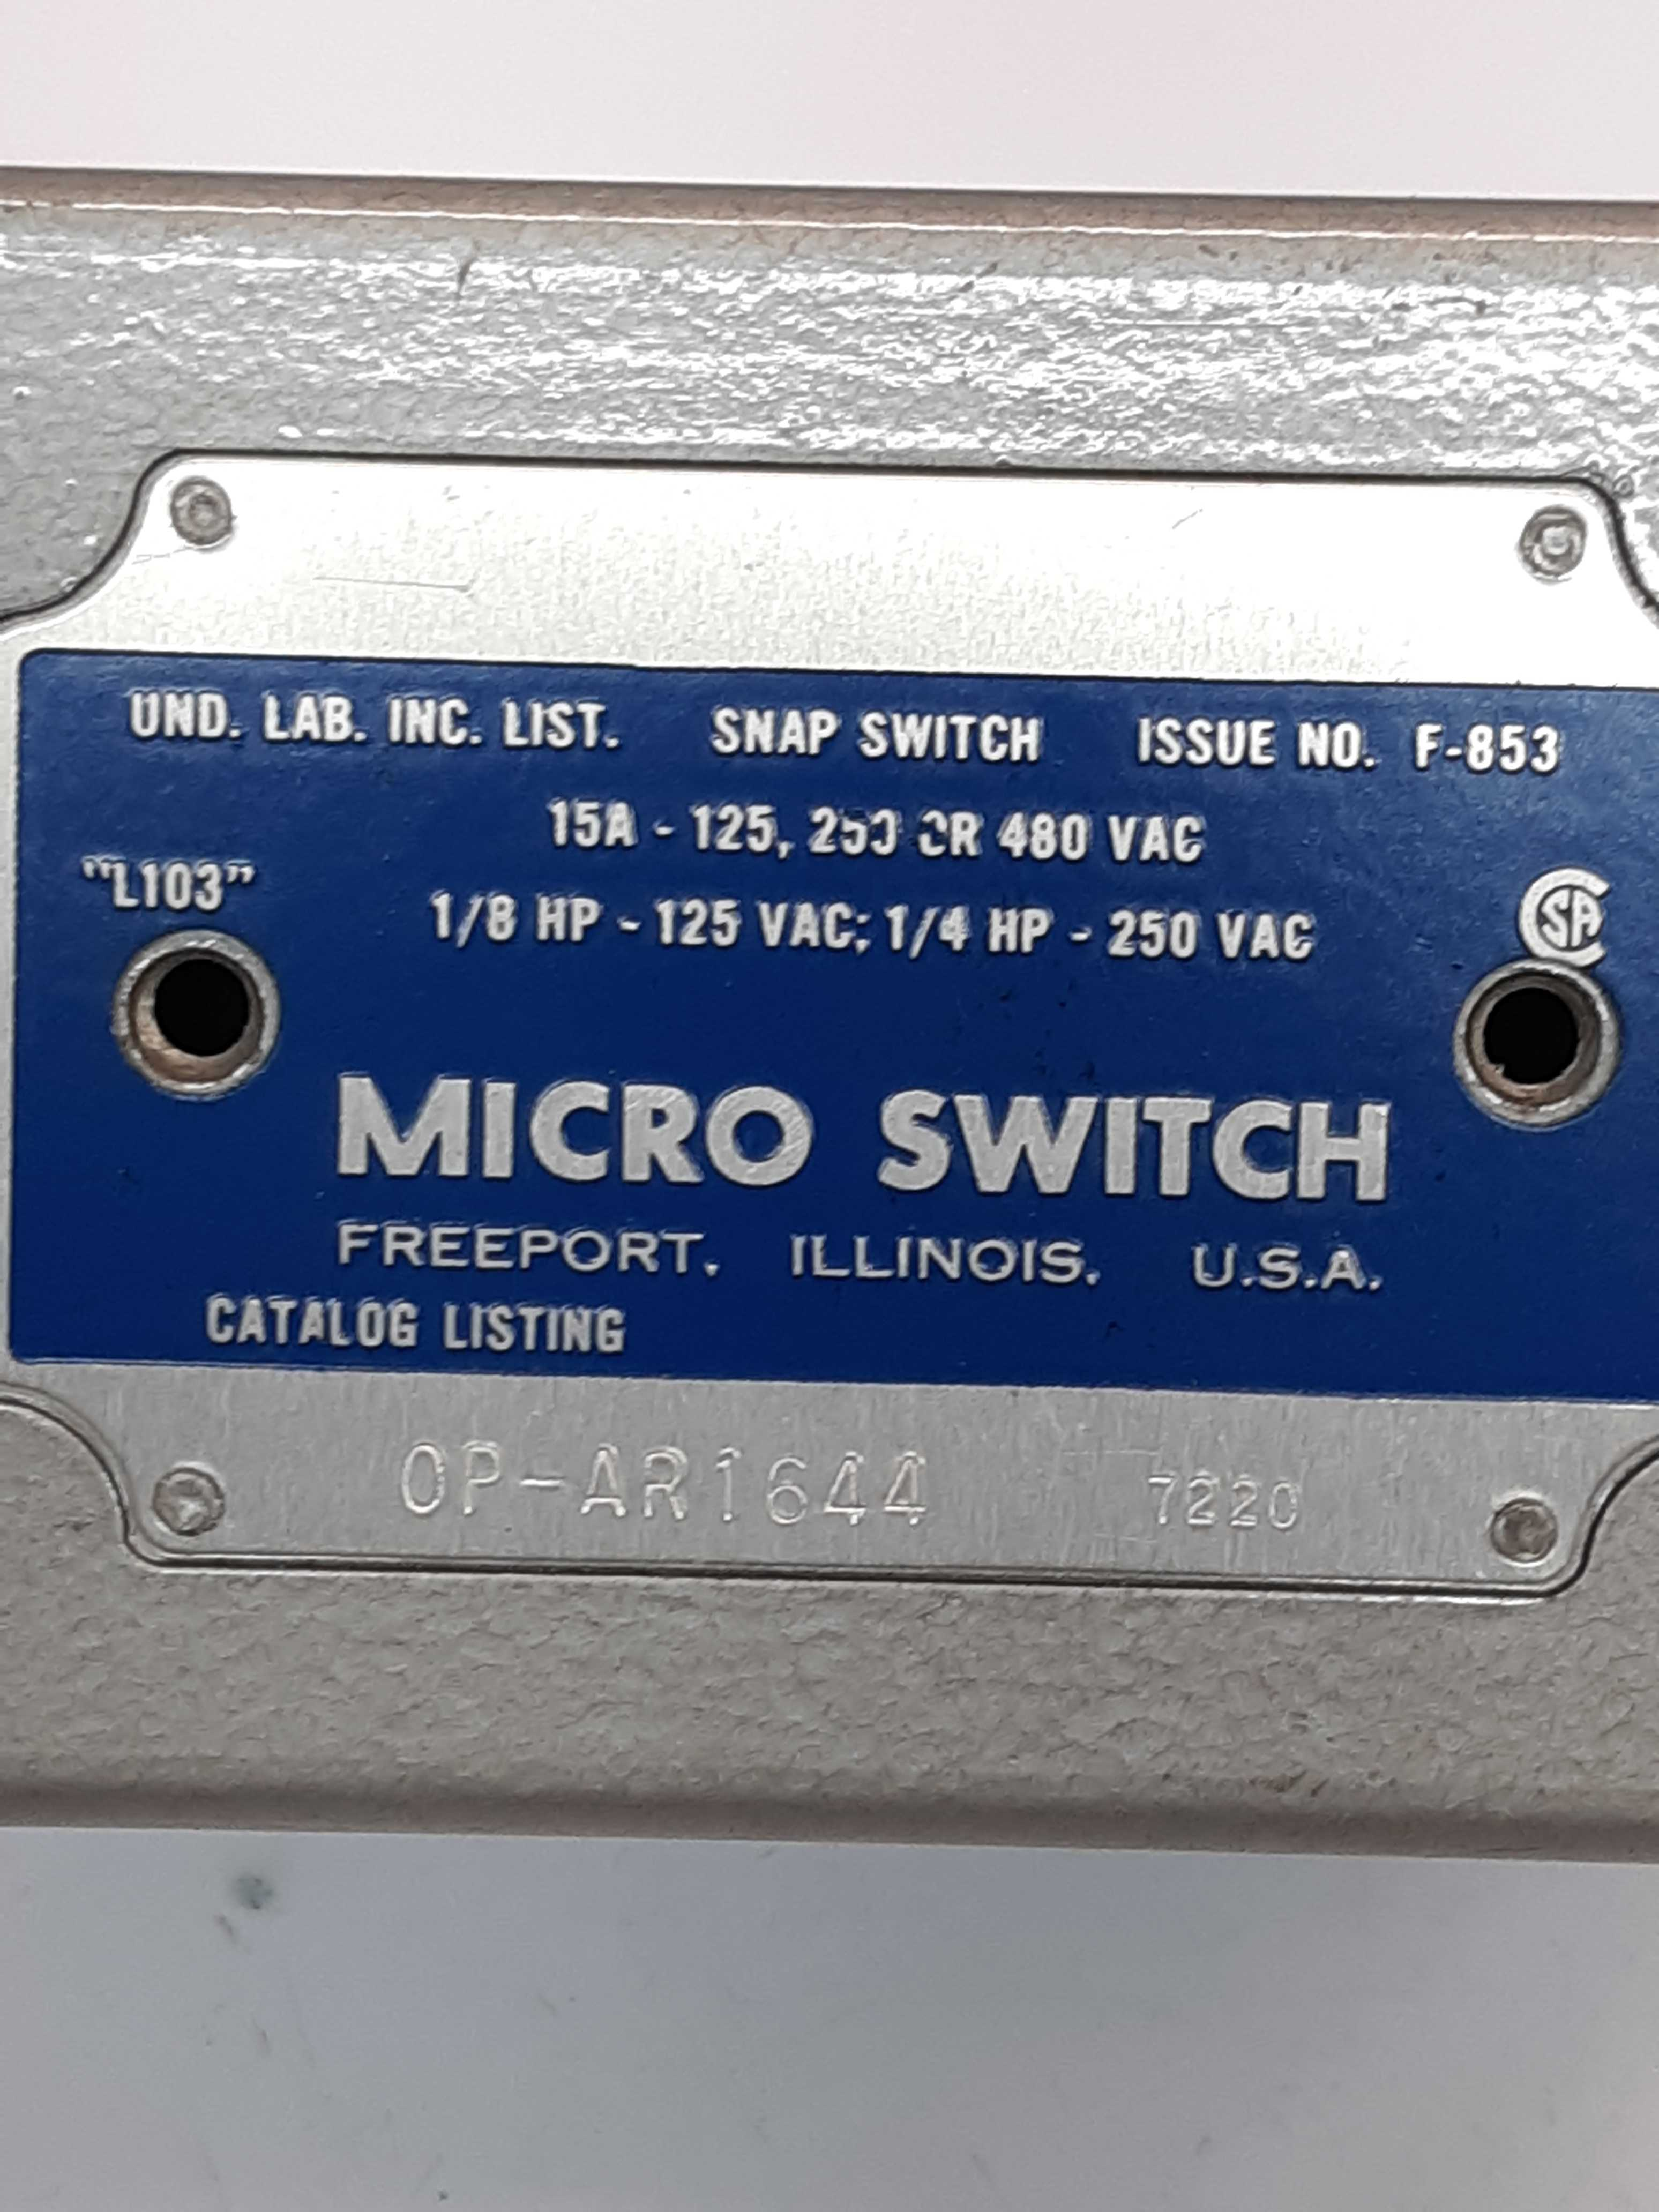 Micro Switch OP-AR1644 Snap Switch